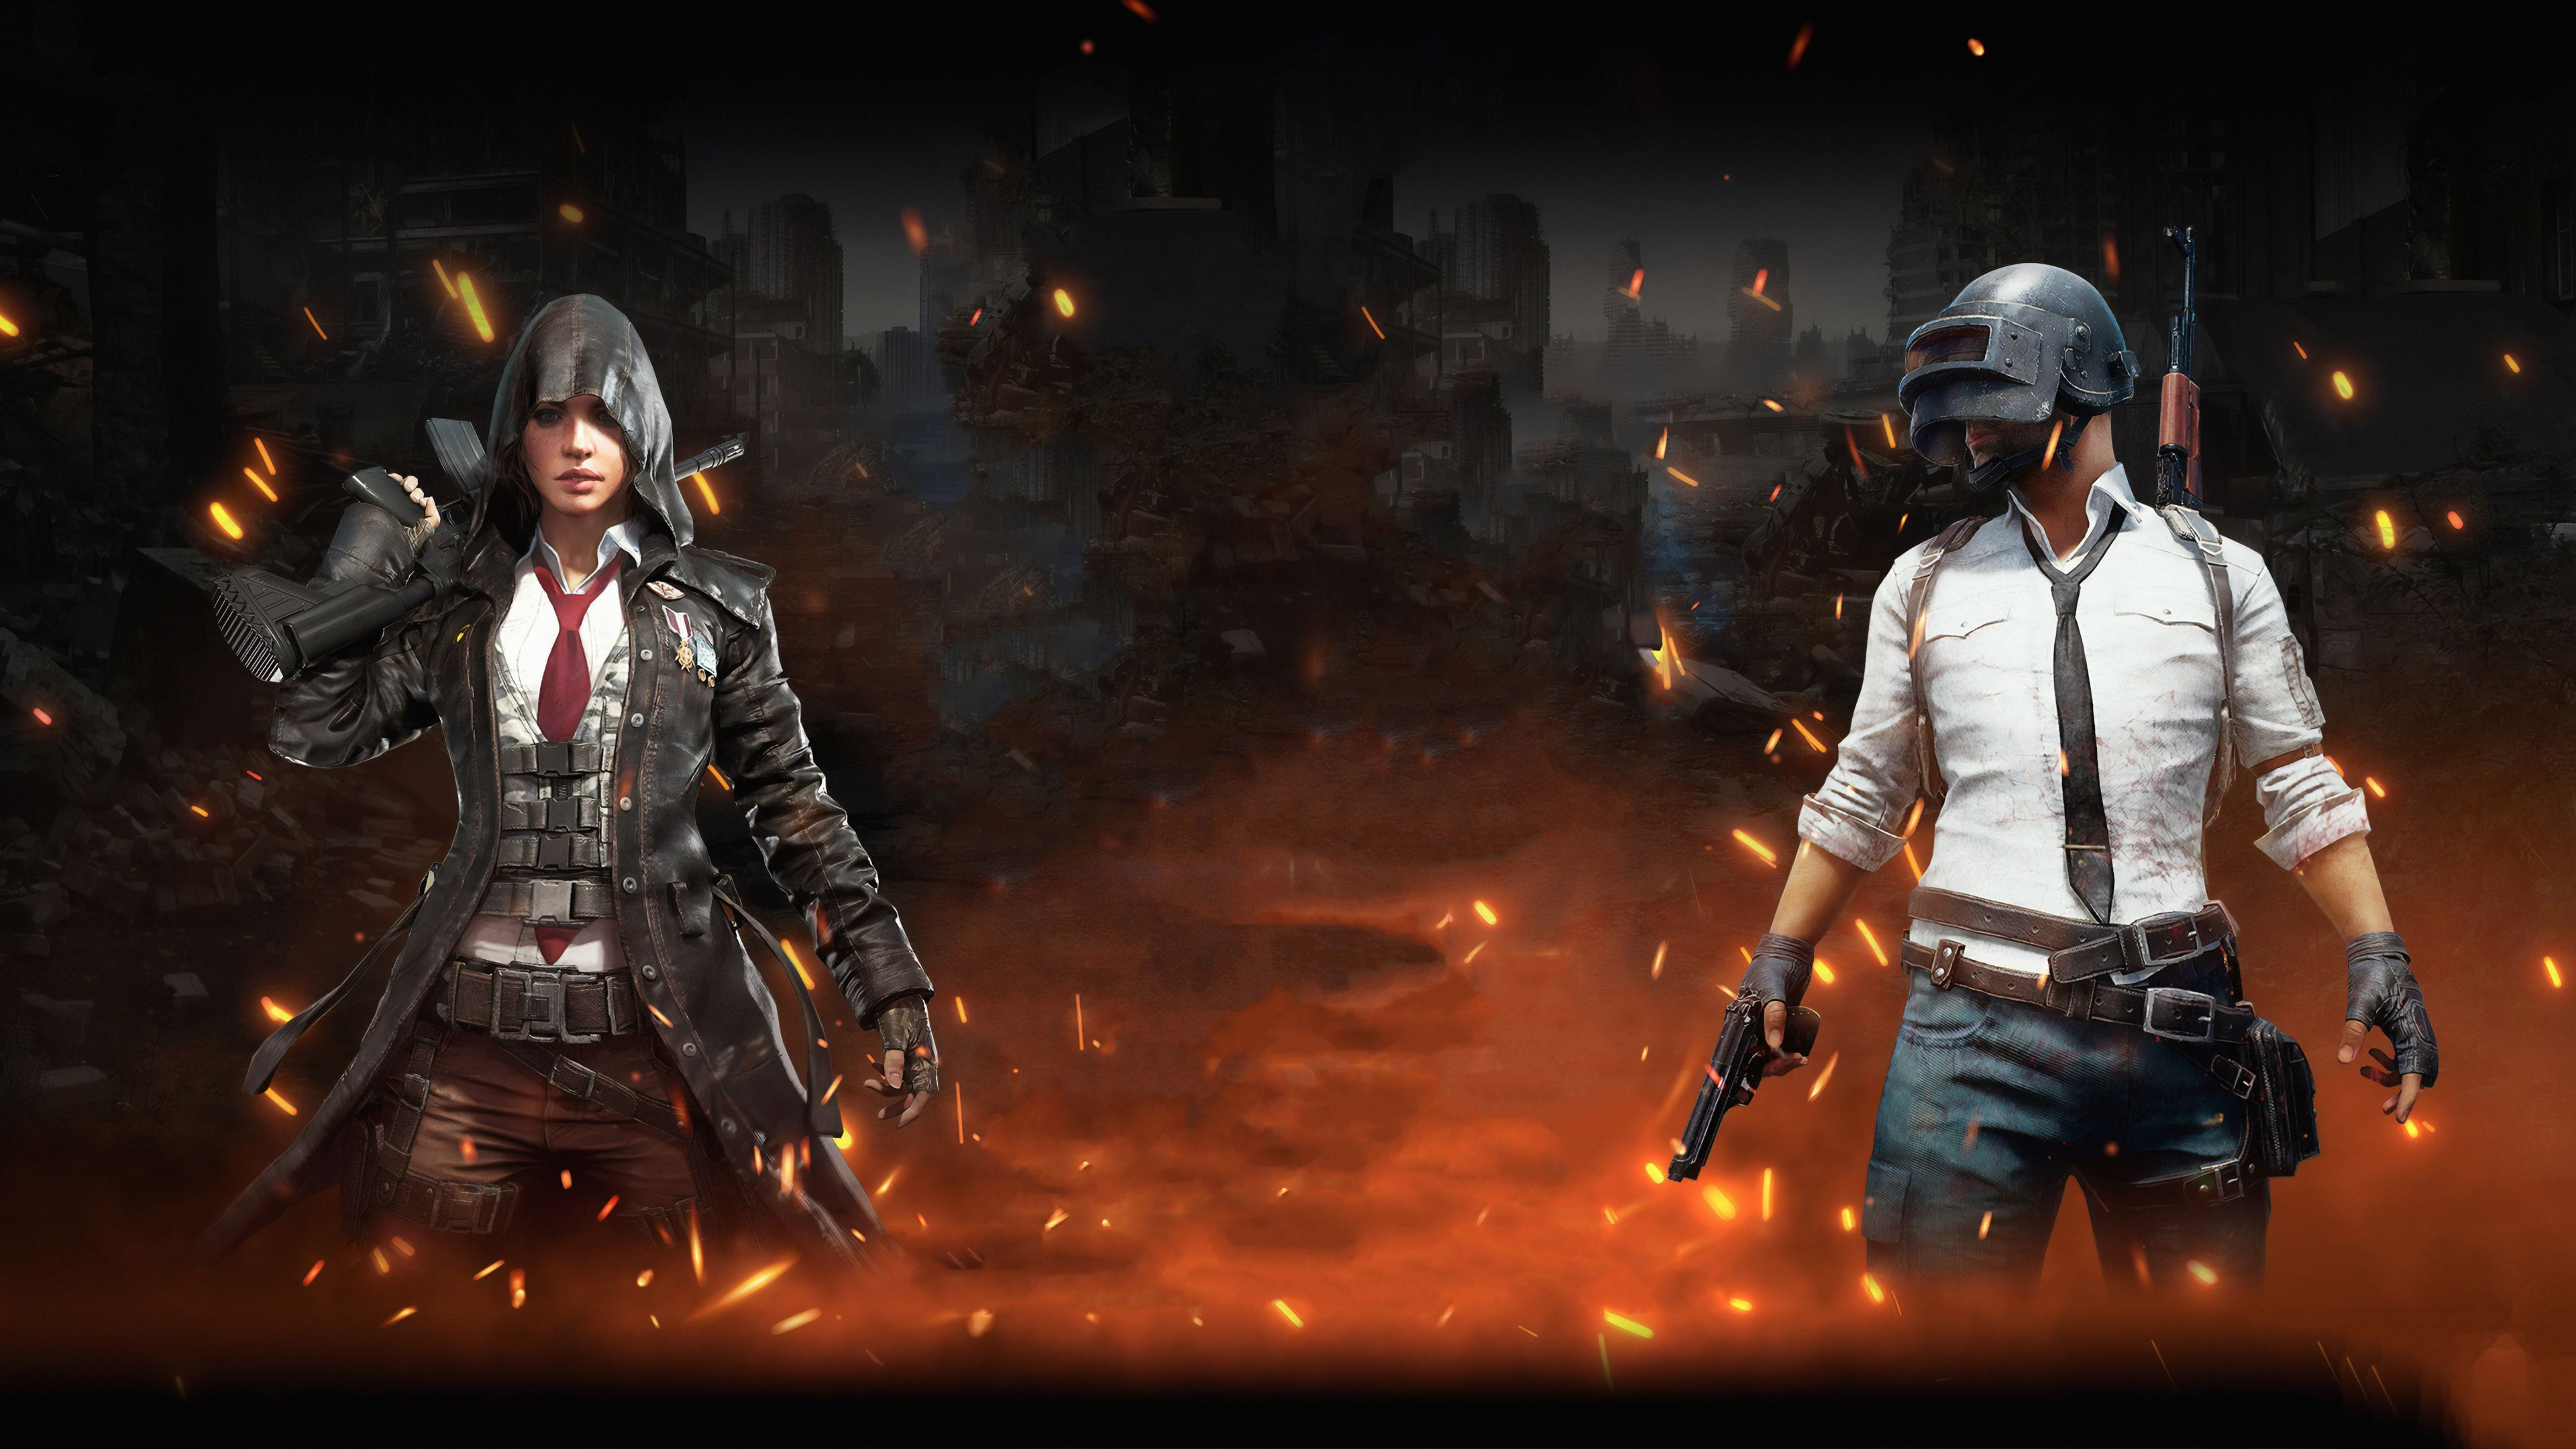 Pubg 2019 Game Pubg Wallpapers Ps Games Wallpapers Playerunknowns Battleground 4k Wallpaper Images Hd Ps Games Wallpaper For Computer Backgrounds